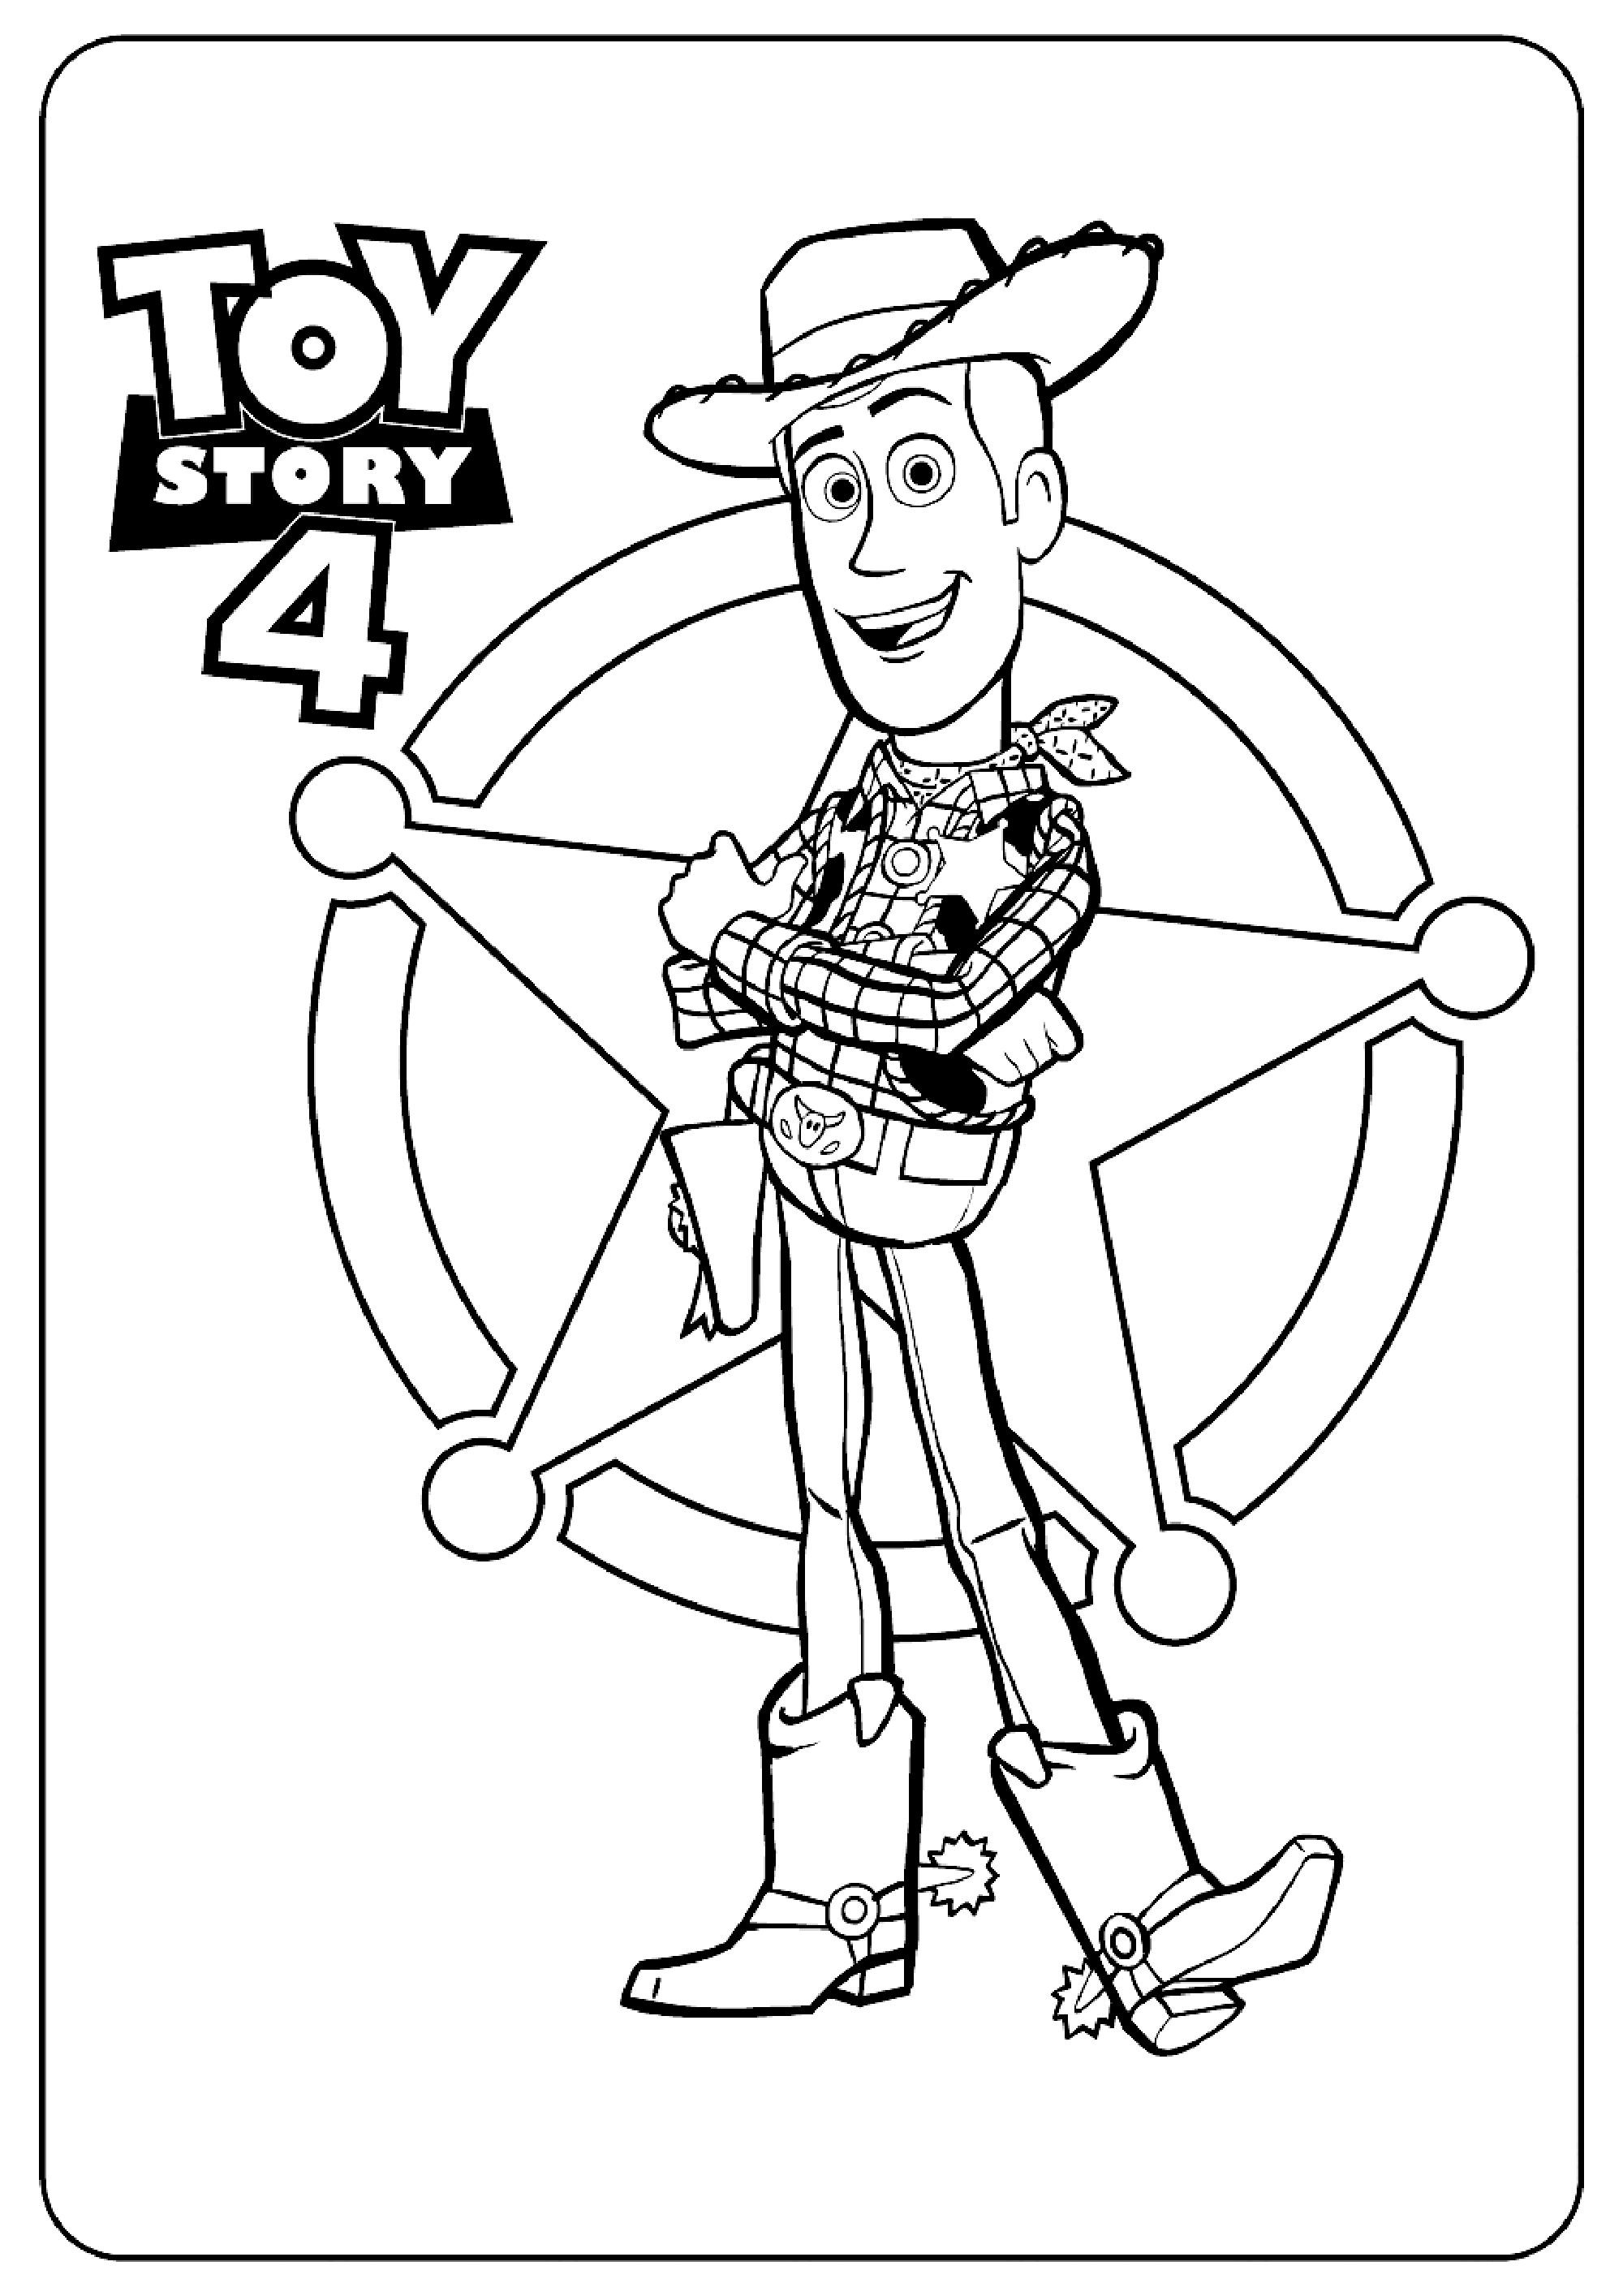 coloring toy story printables coloring pages toy story free printable coloring pages coloring story printables toy